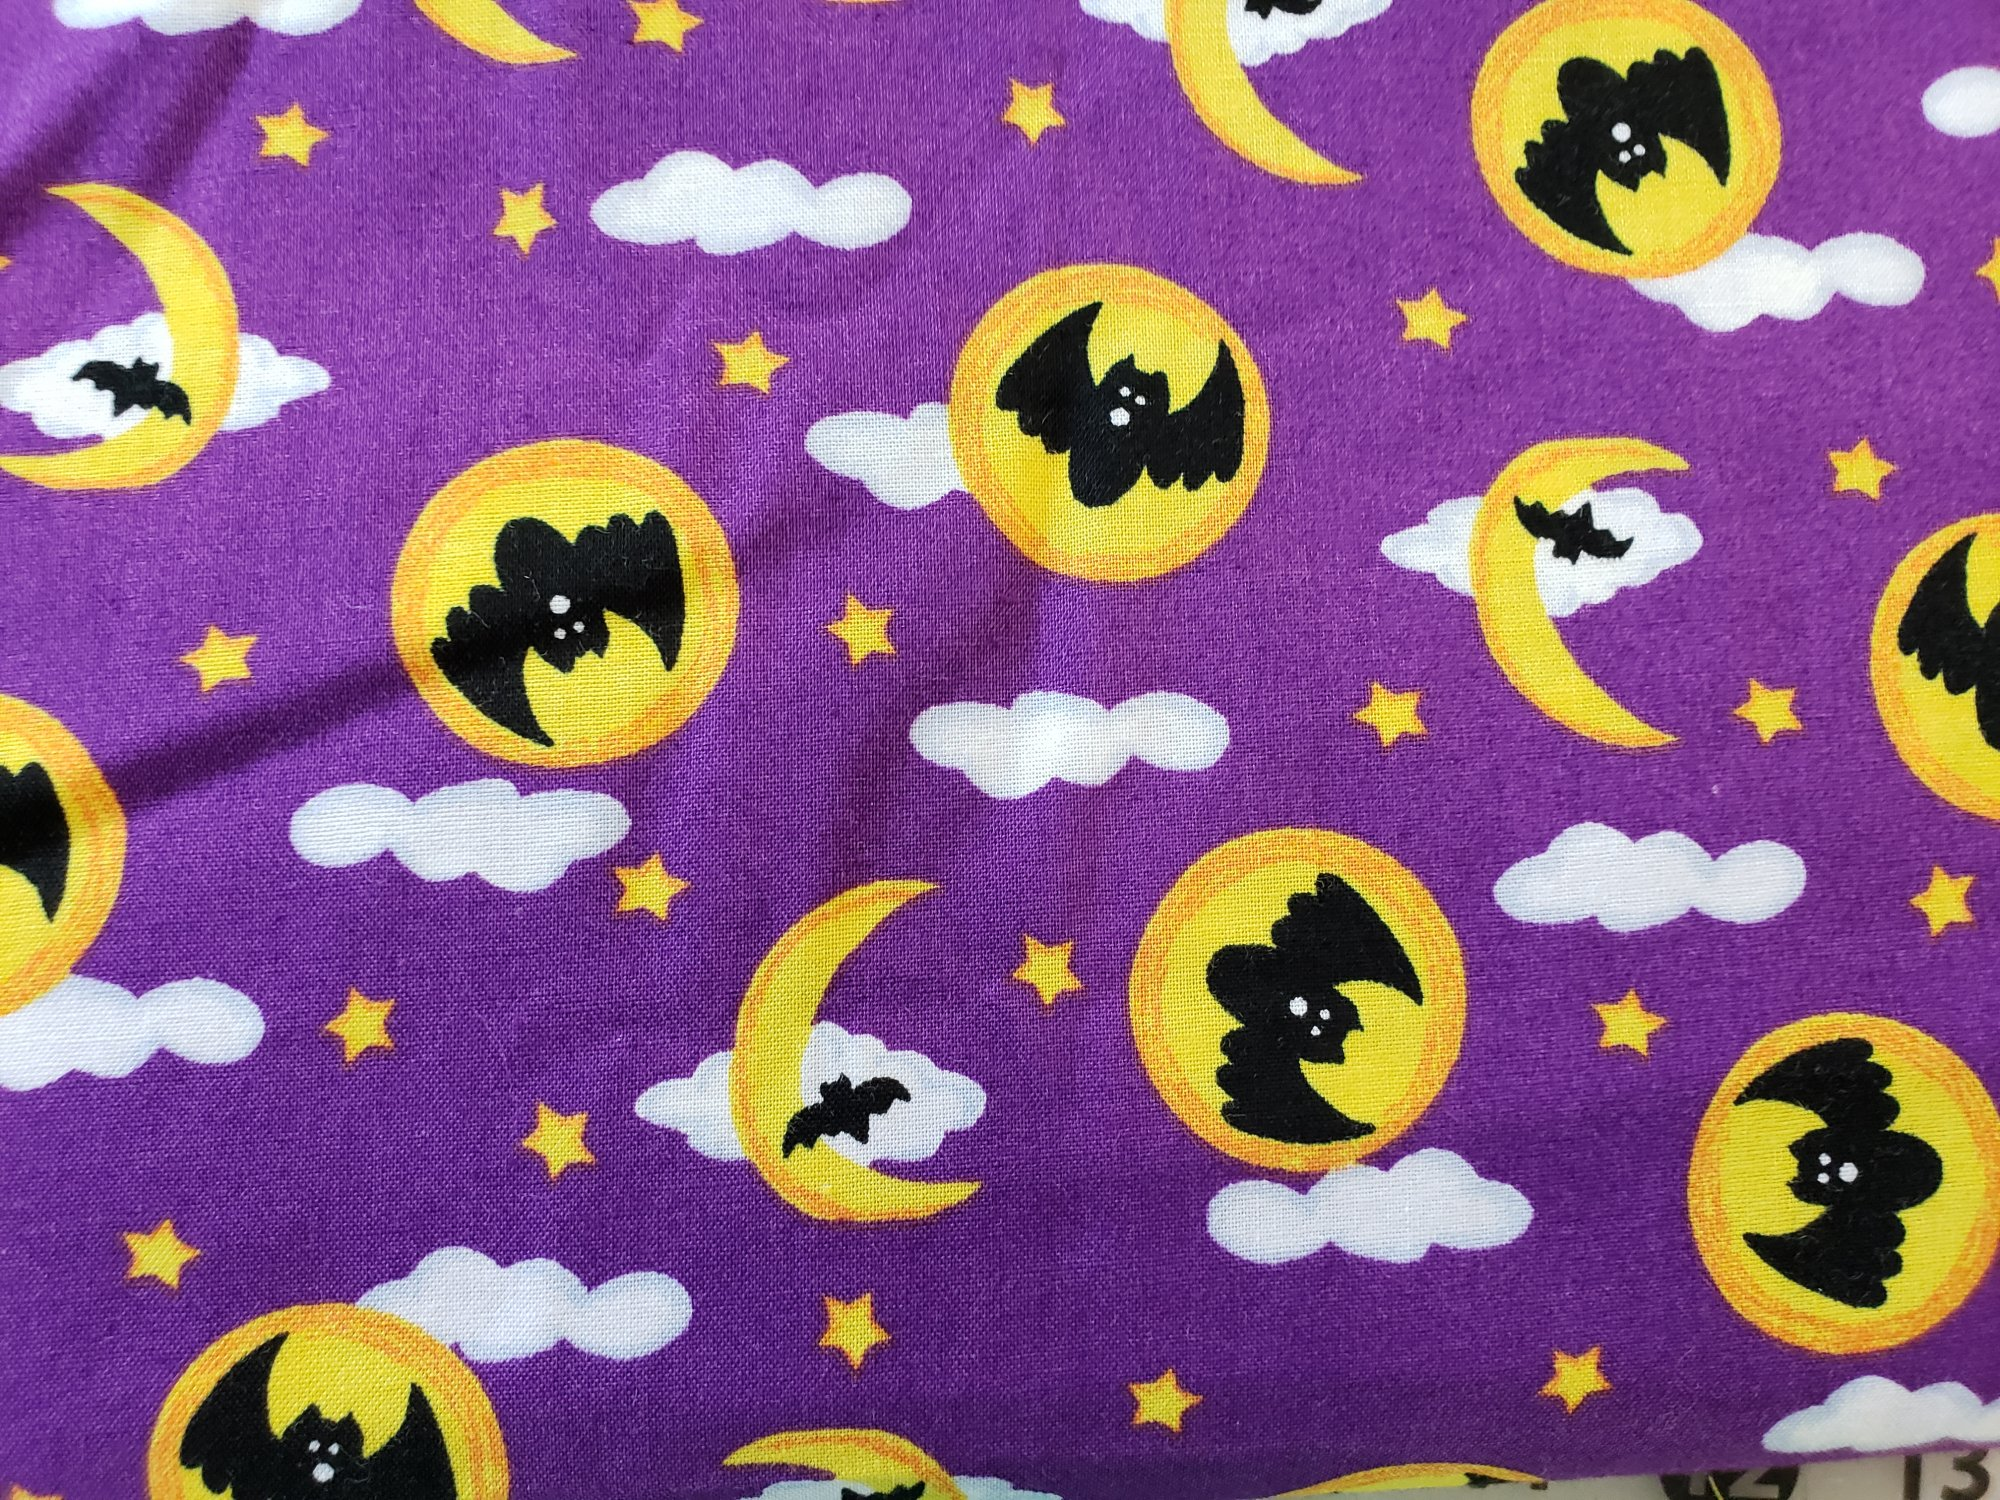 Bats and Moons on Purple Background